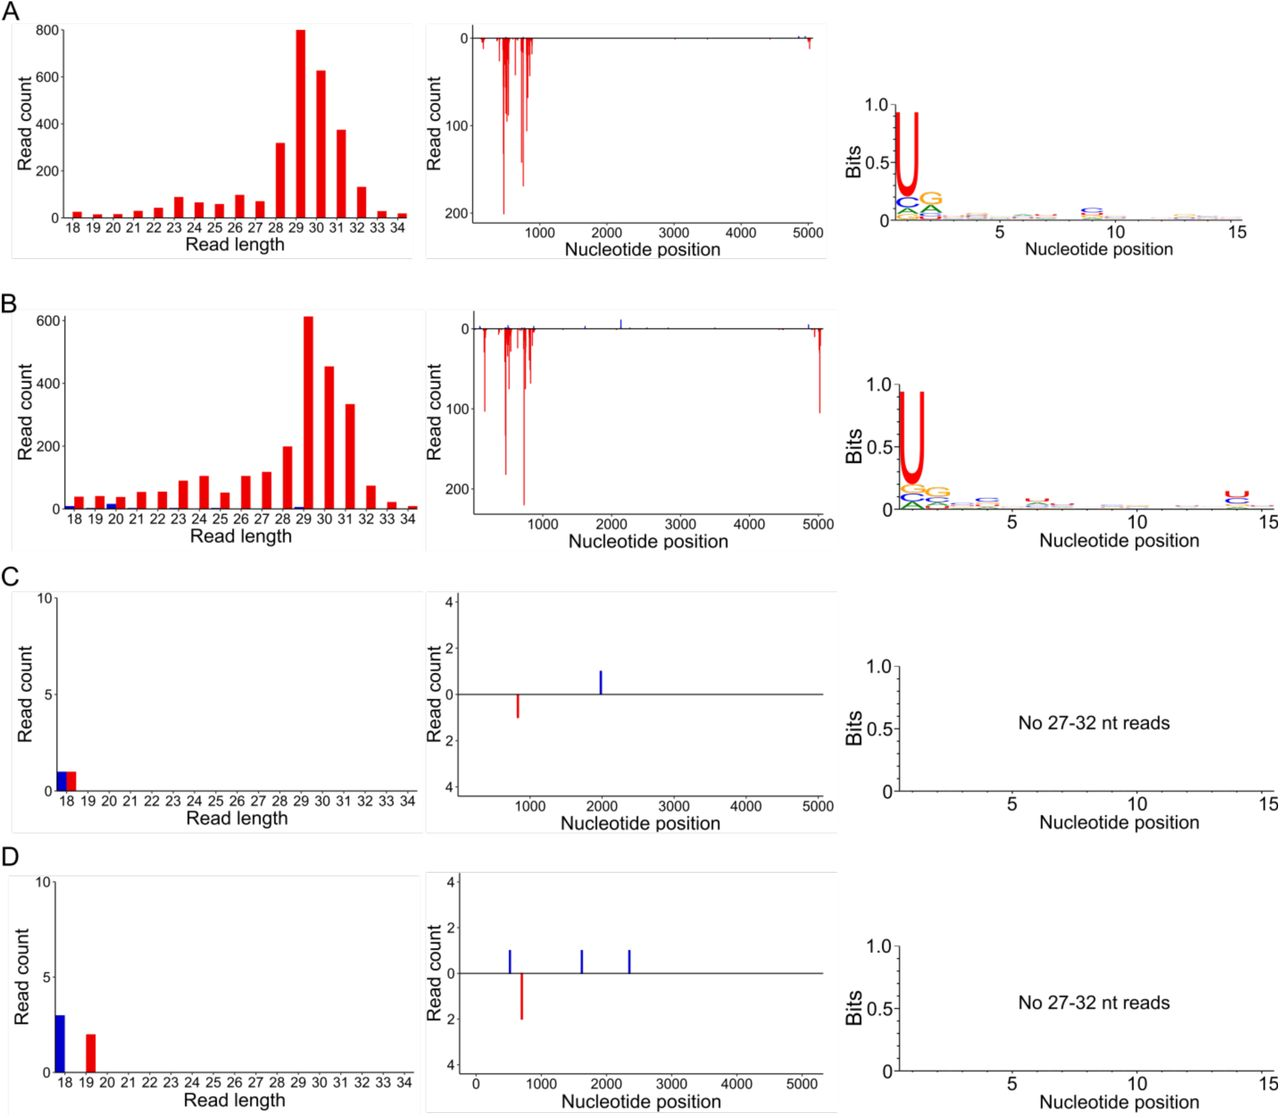 RT-PCR products produced using primers flanking the site into which recombinant DcDV sequence was inserted in CrPV-DcDV (primers 15 and 16). RNA from all biological replicates from each day shown in Fig. 4.6a (A) or Fig. 4.7a (B) was pooled and used as templates for RT-PCR. RNA from CRF-CA D. citri was used as a negative control. In vitro transcribed wild-type CrPV or CrPV-DcDV RNA was used as a positive control. DPI = days post injection. DPF = days post feeding.